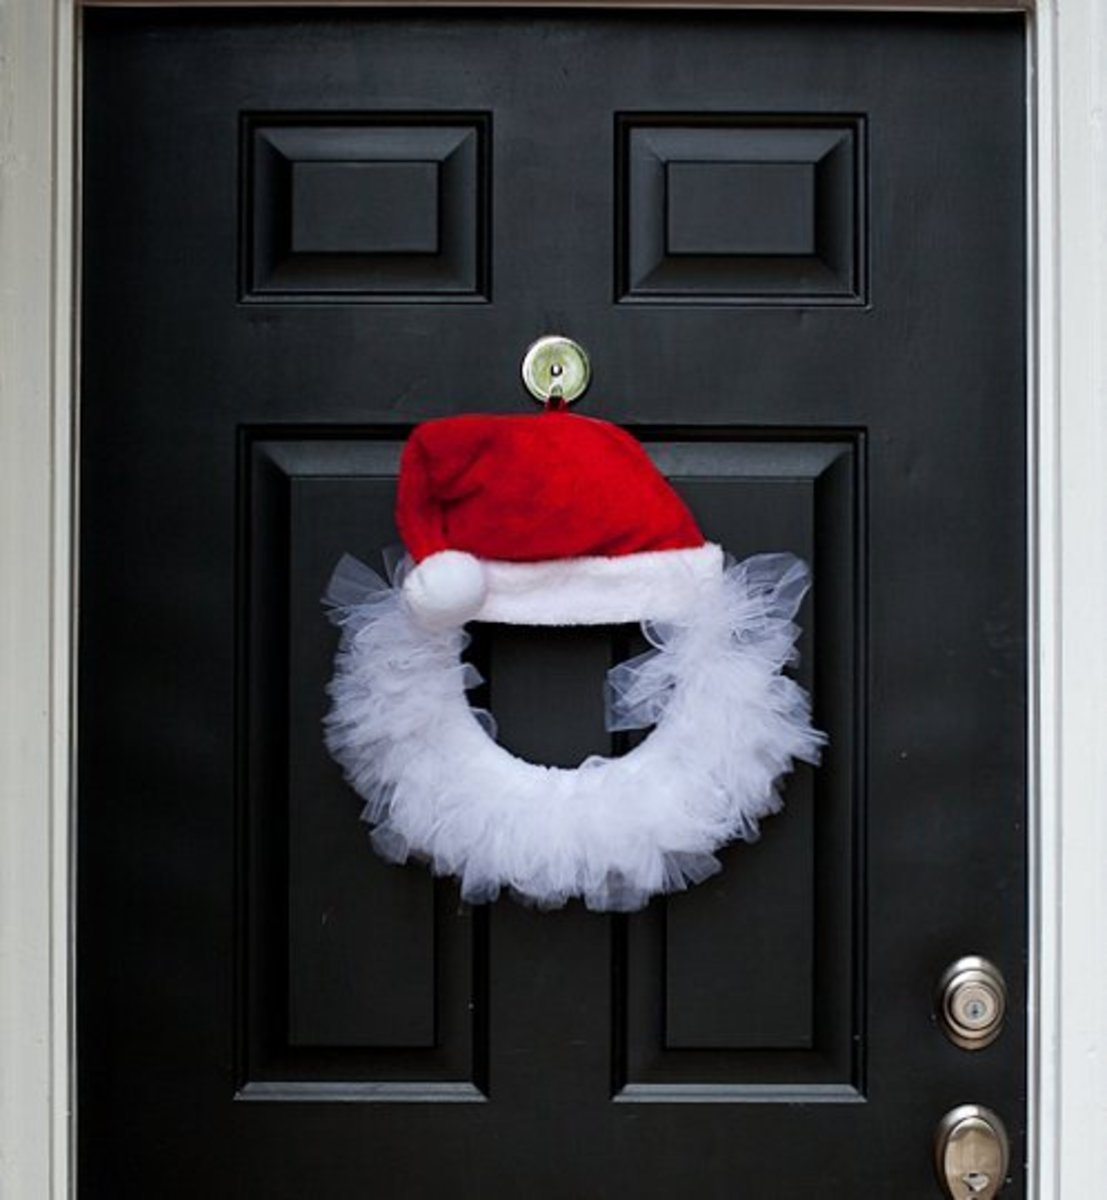 Santa knocking at the door.